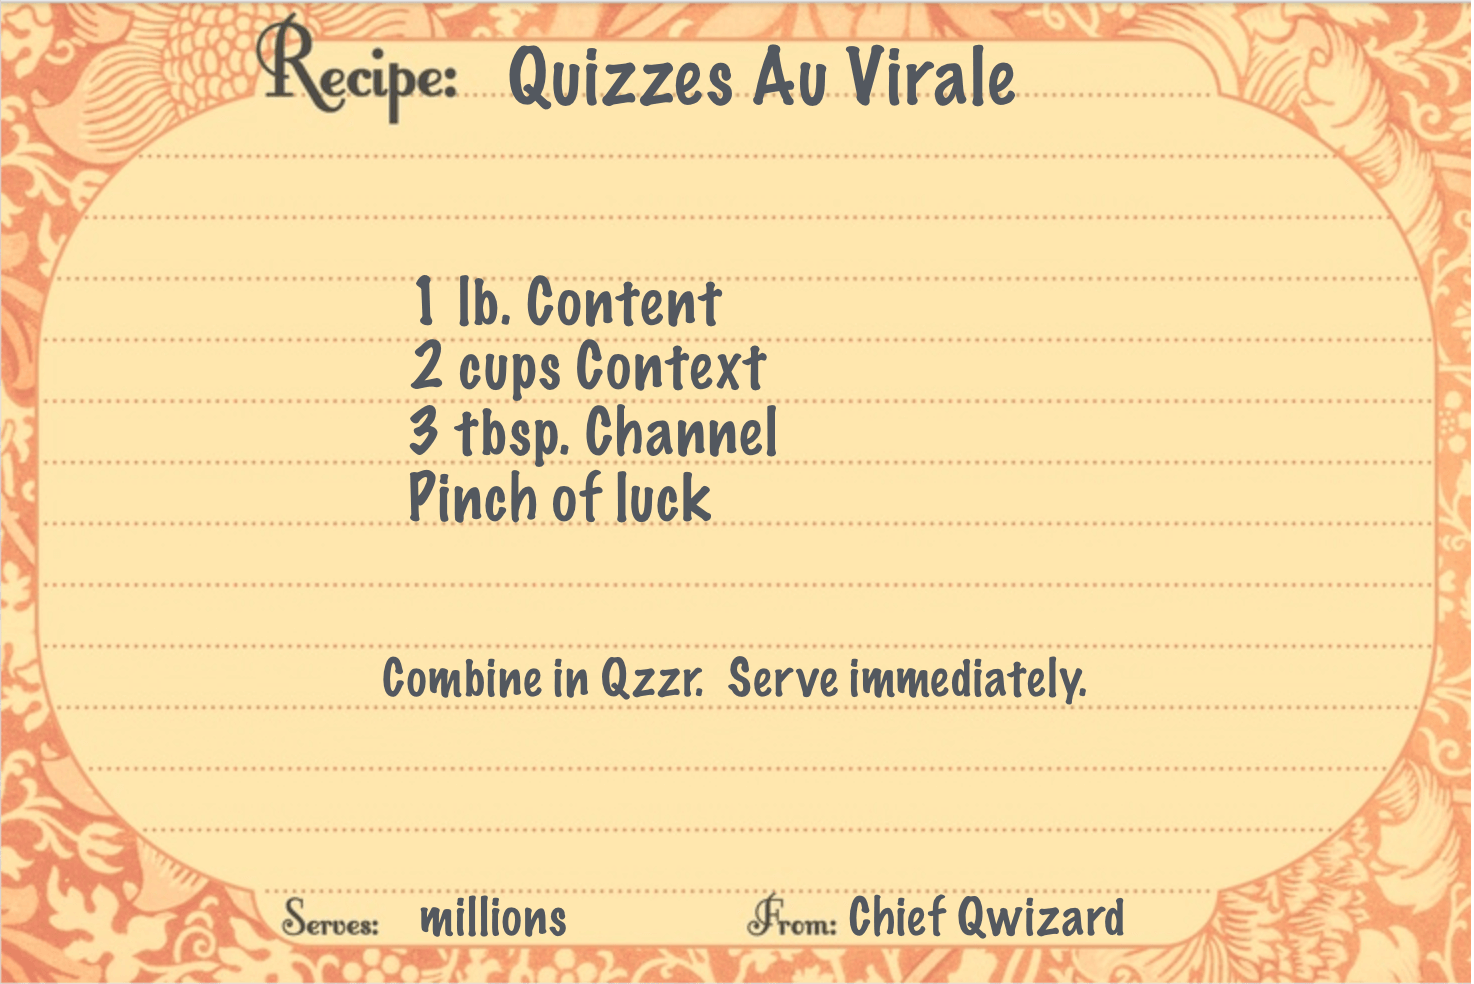 Recipe for Quizzes Au Virale